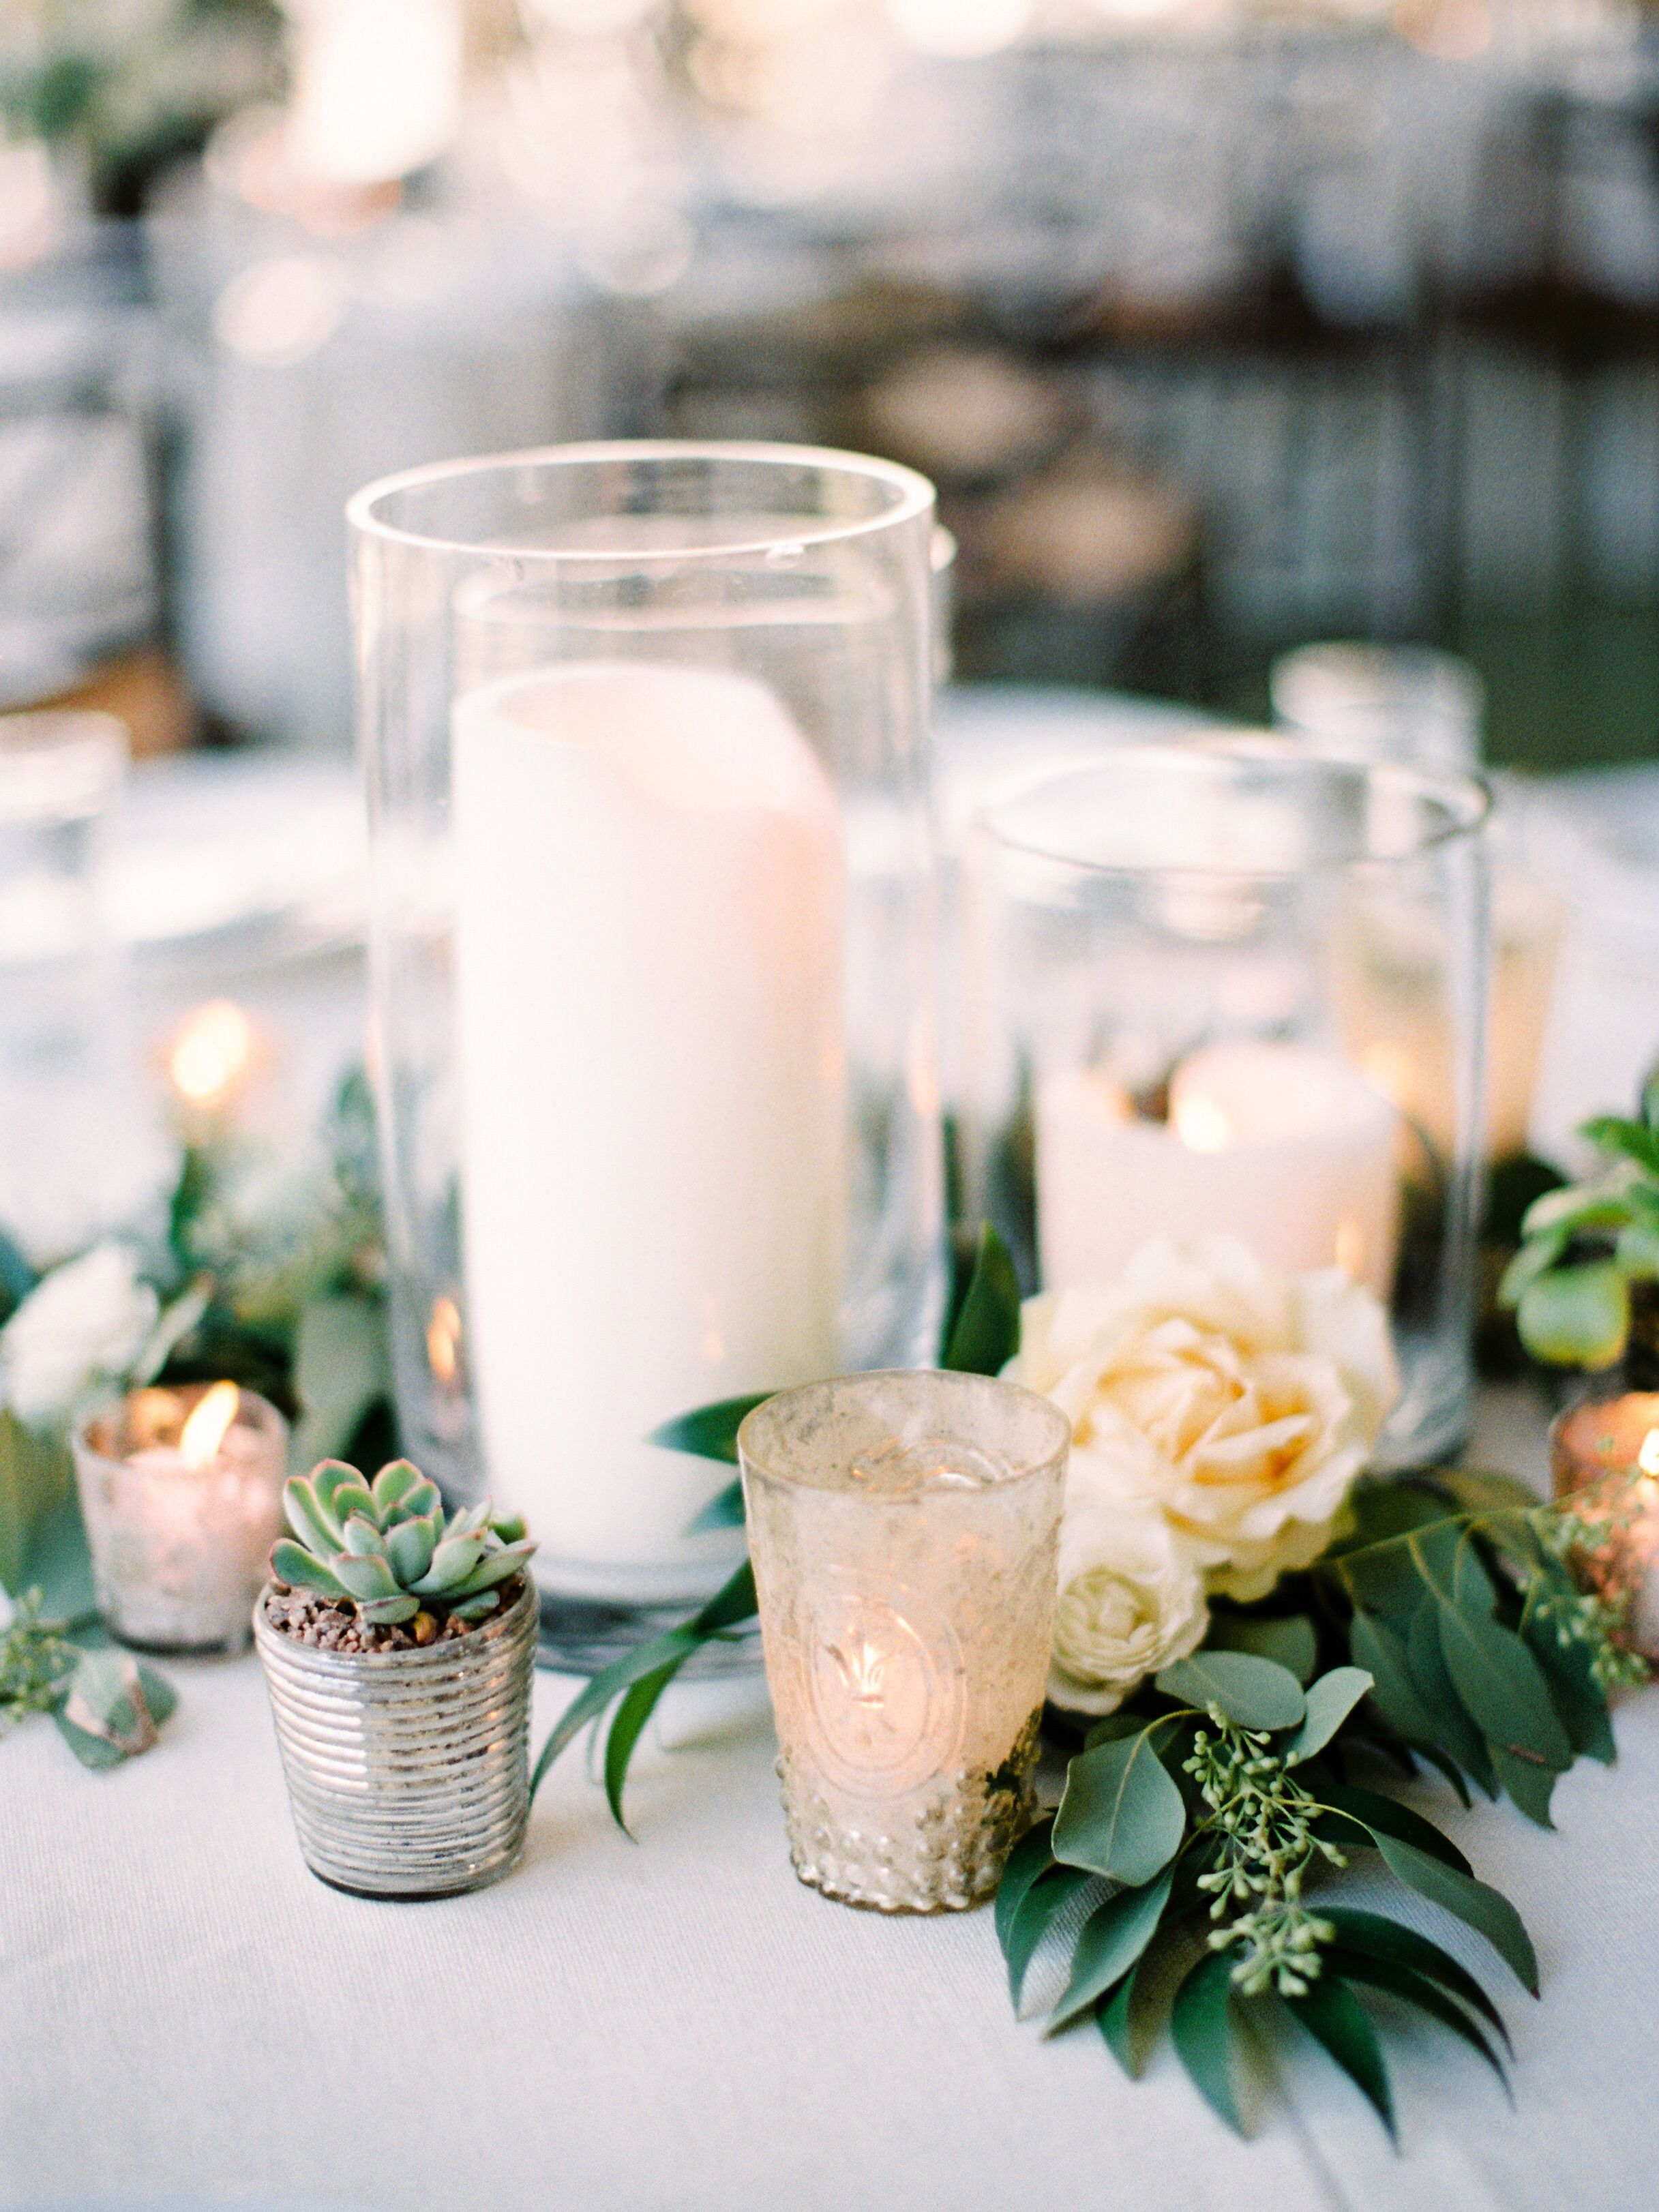 Trios of thick pillar candles at varied heights with clusters of